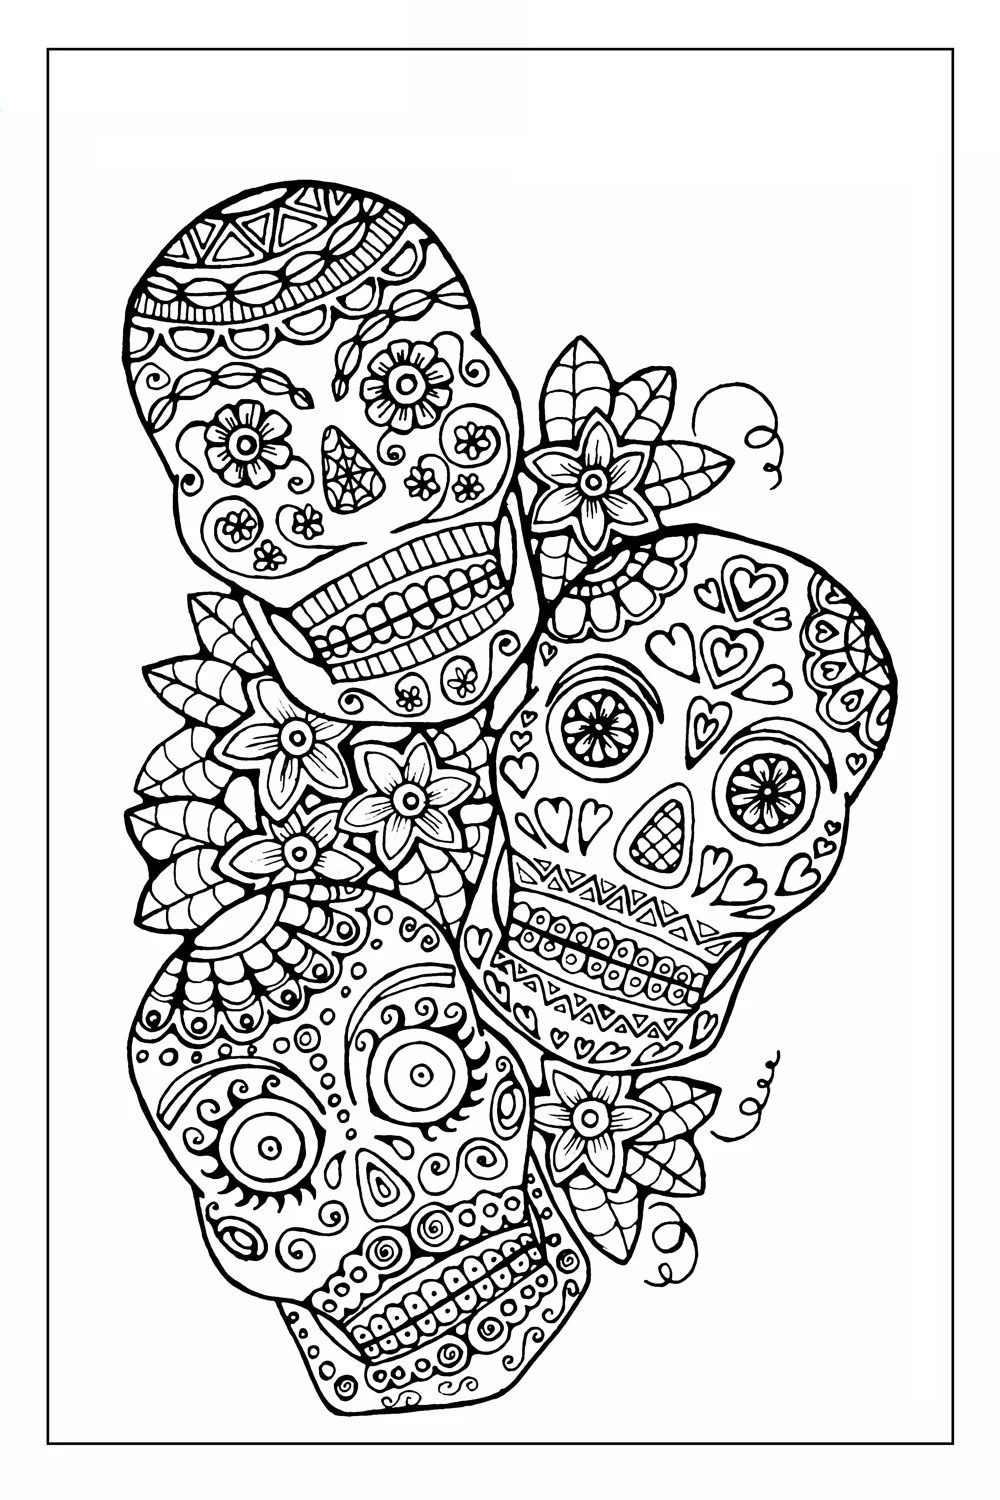 Items similar to Sugar Skull Coloring Page to Print and